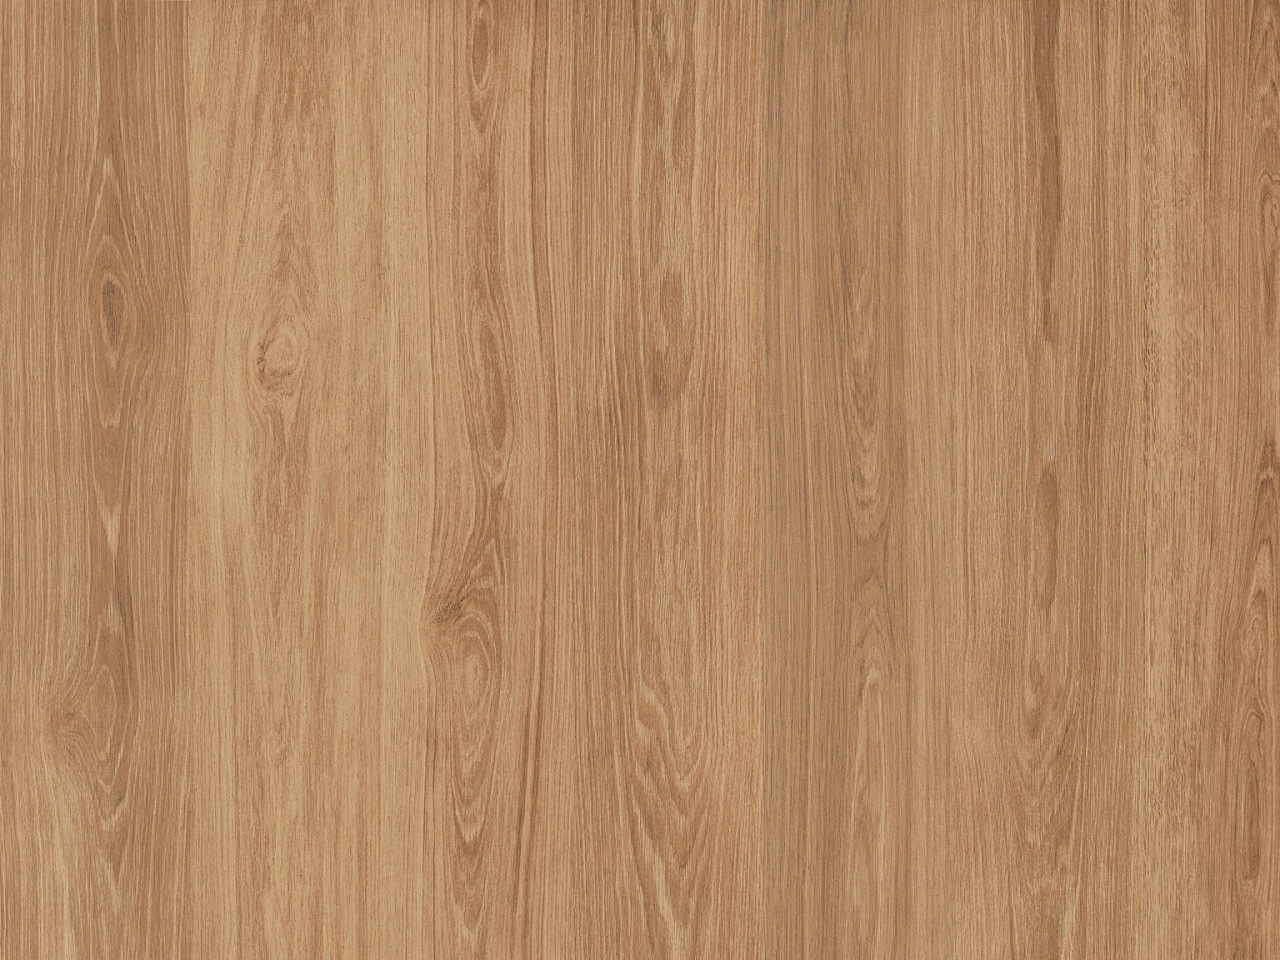 Kork Amora Wood – Domingo Oak kurz, 8F4002